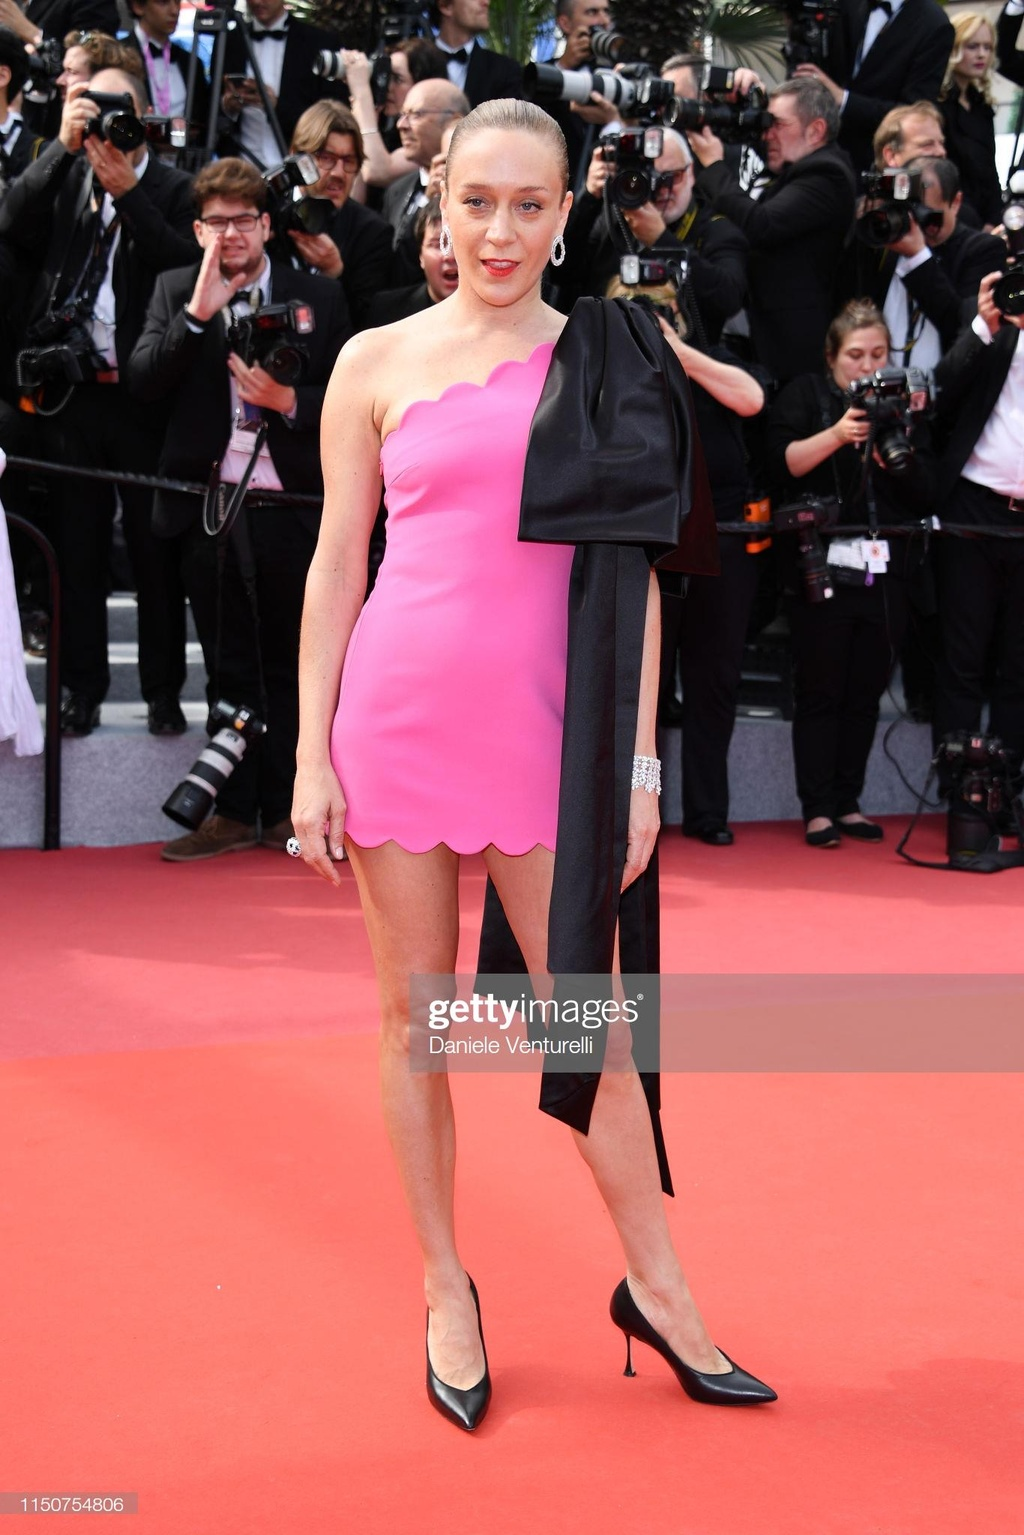 Lien hoan phim Cannes 2019 anh 11